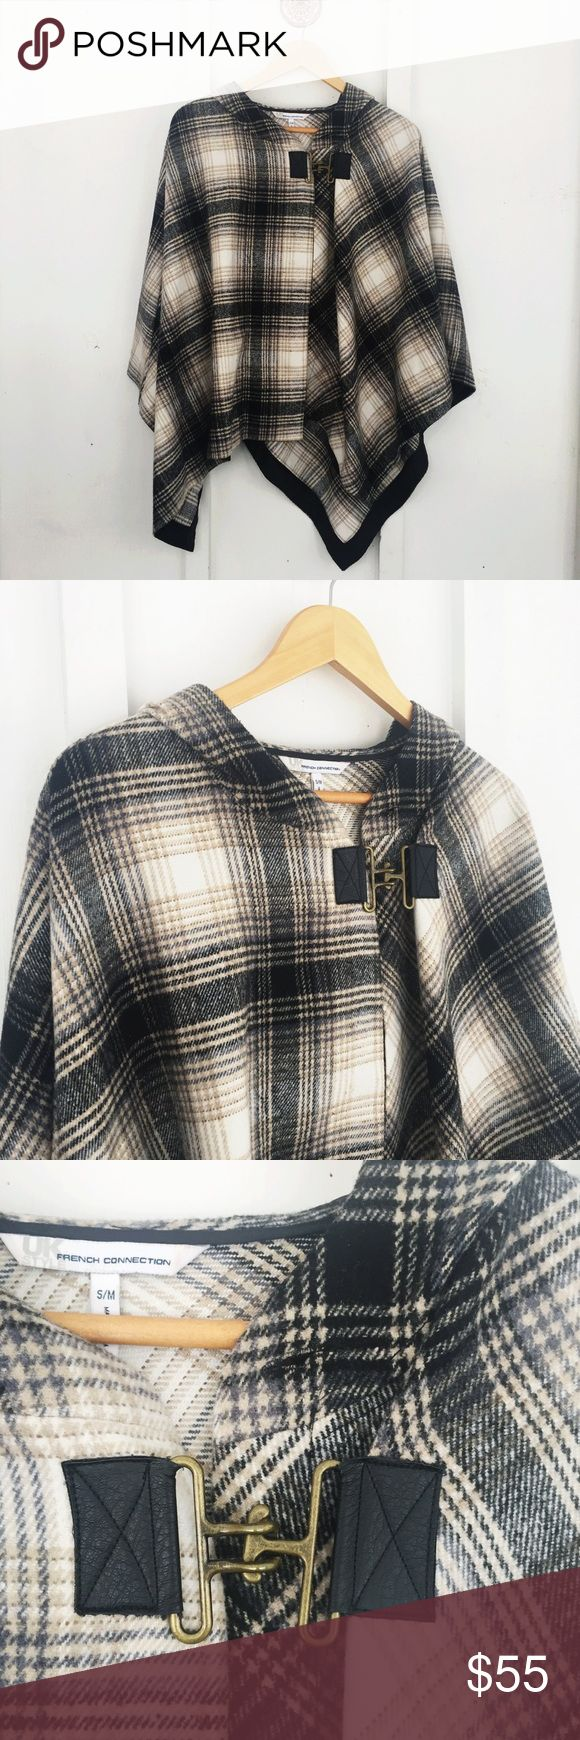 French Connection Plaid Cape with Clasp & Hood French Connection Plaid Cape with Metal Frnt Clasp & Hood. Happy to answer any questions! Thanks for looking!   OFFERS are welcome!  Smoke free home. No trades. French Connection Jackets & Coats Capes